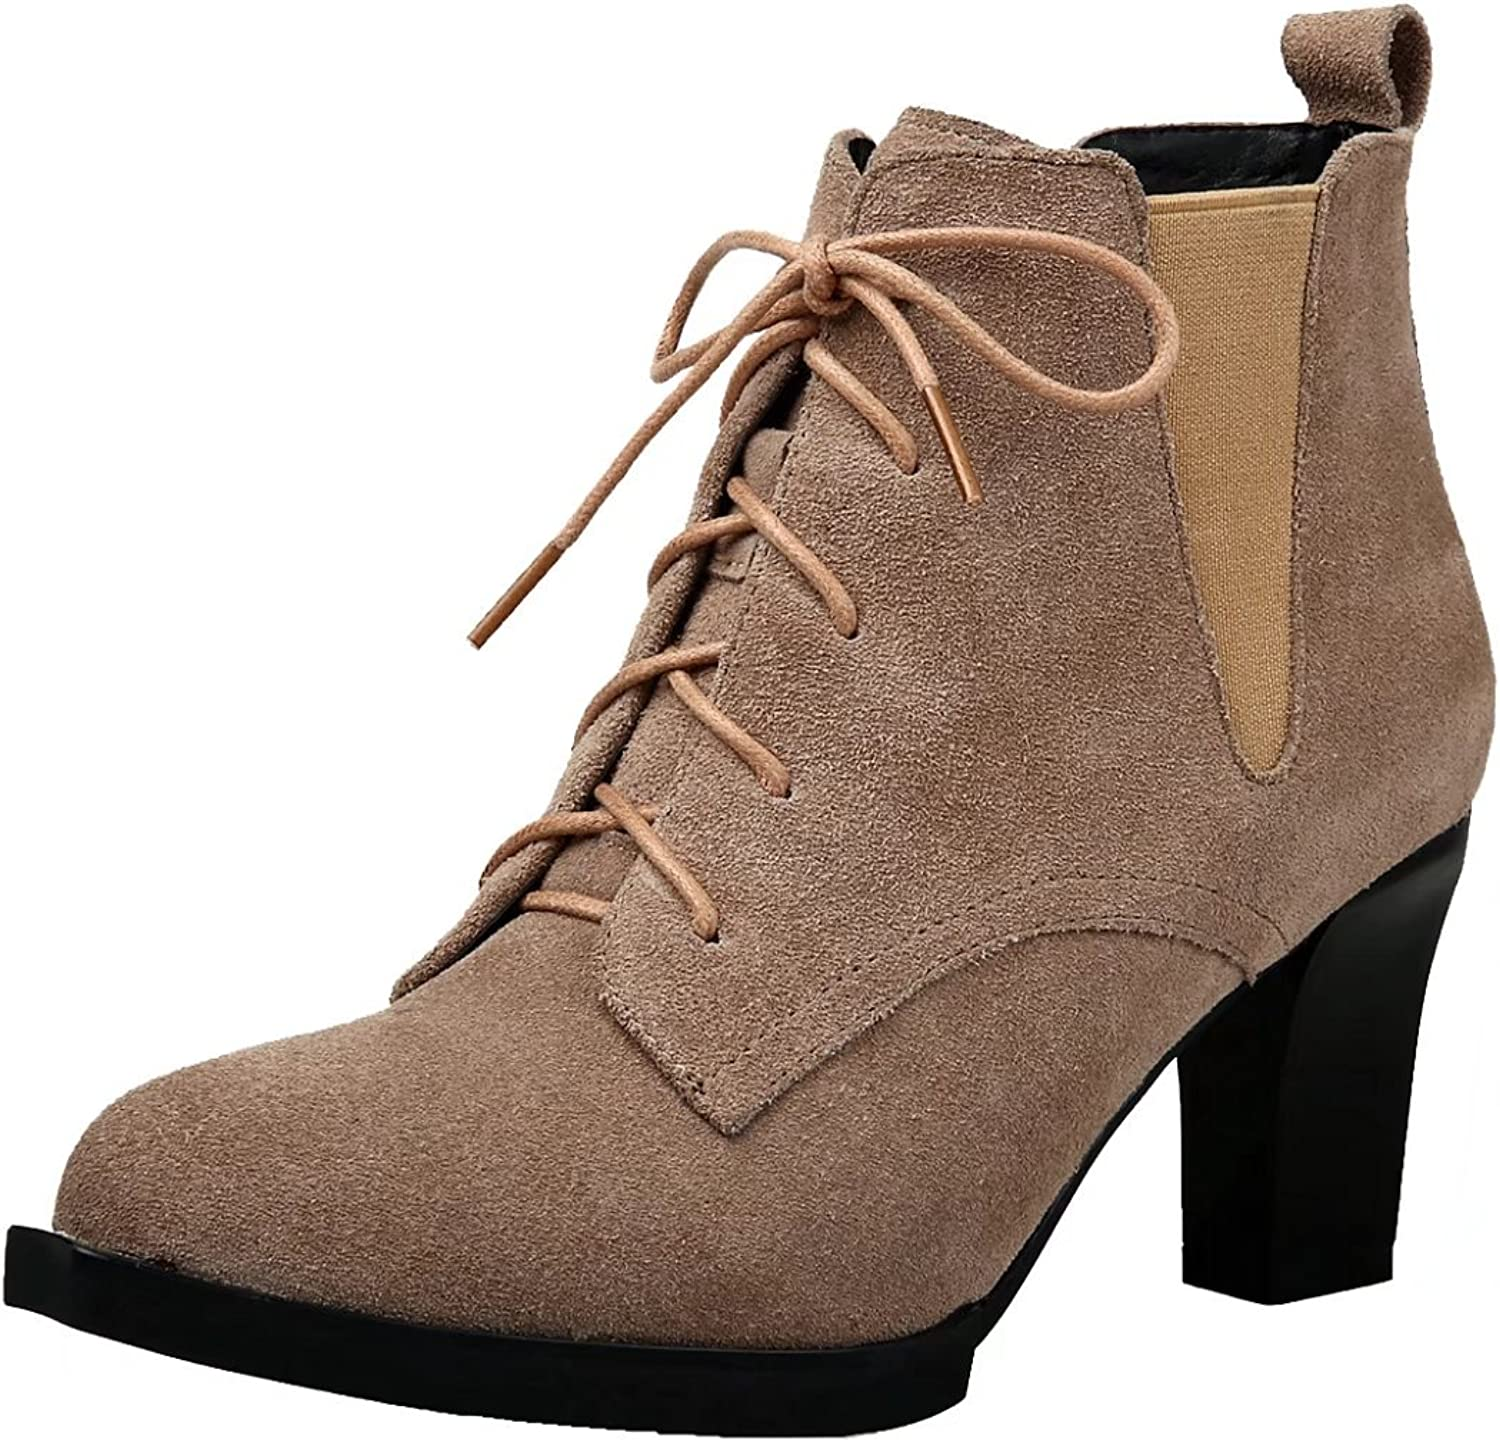 AIYOUMEI Women's Lace-up Block Heel Solid Booties Autumn Winter Ankle Boots